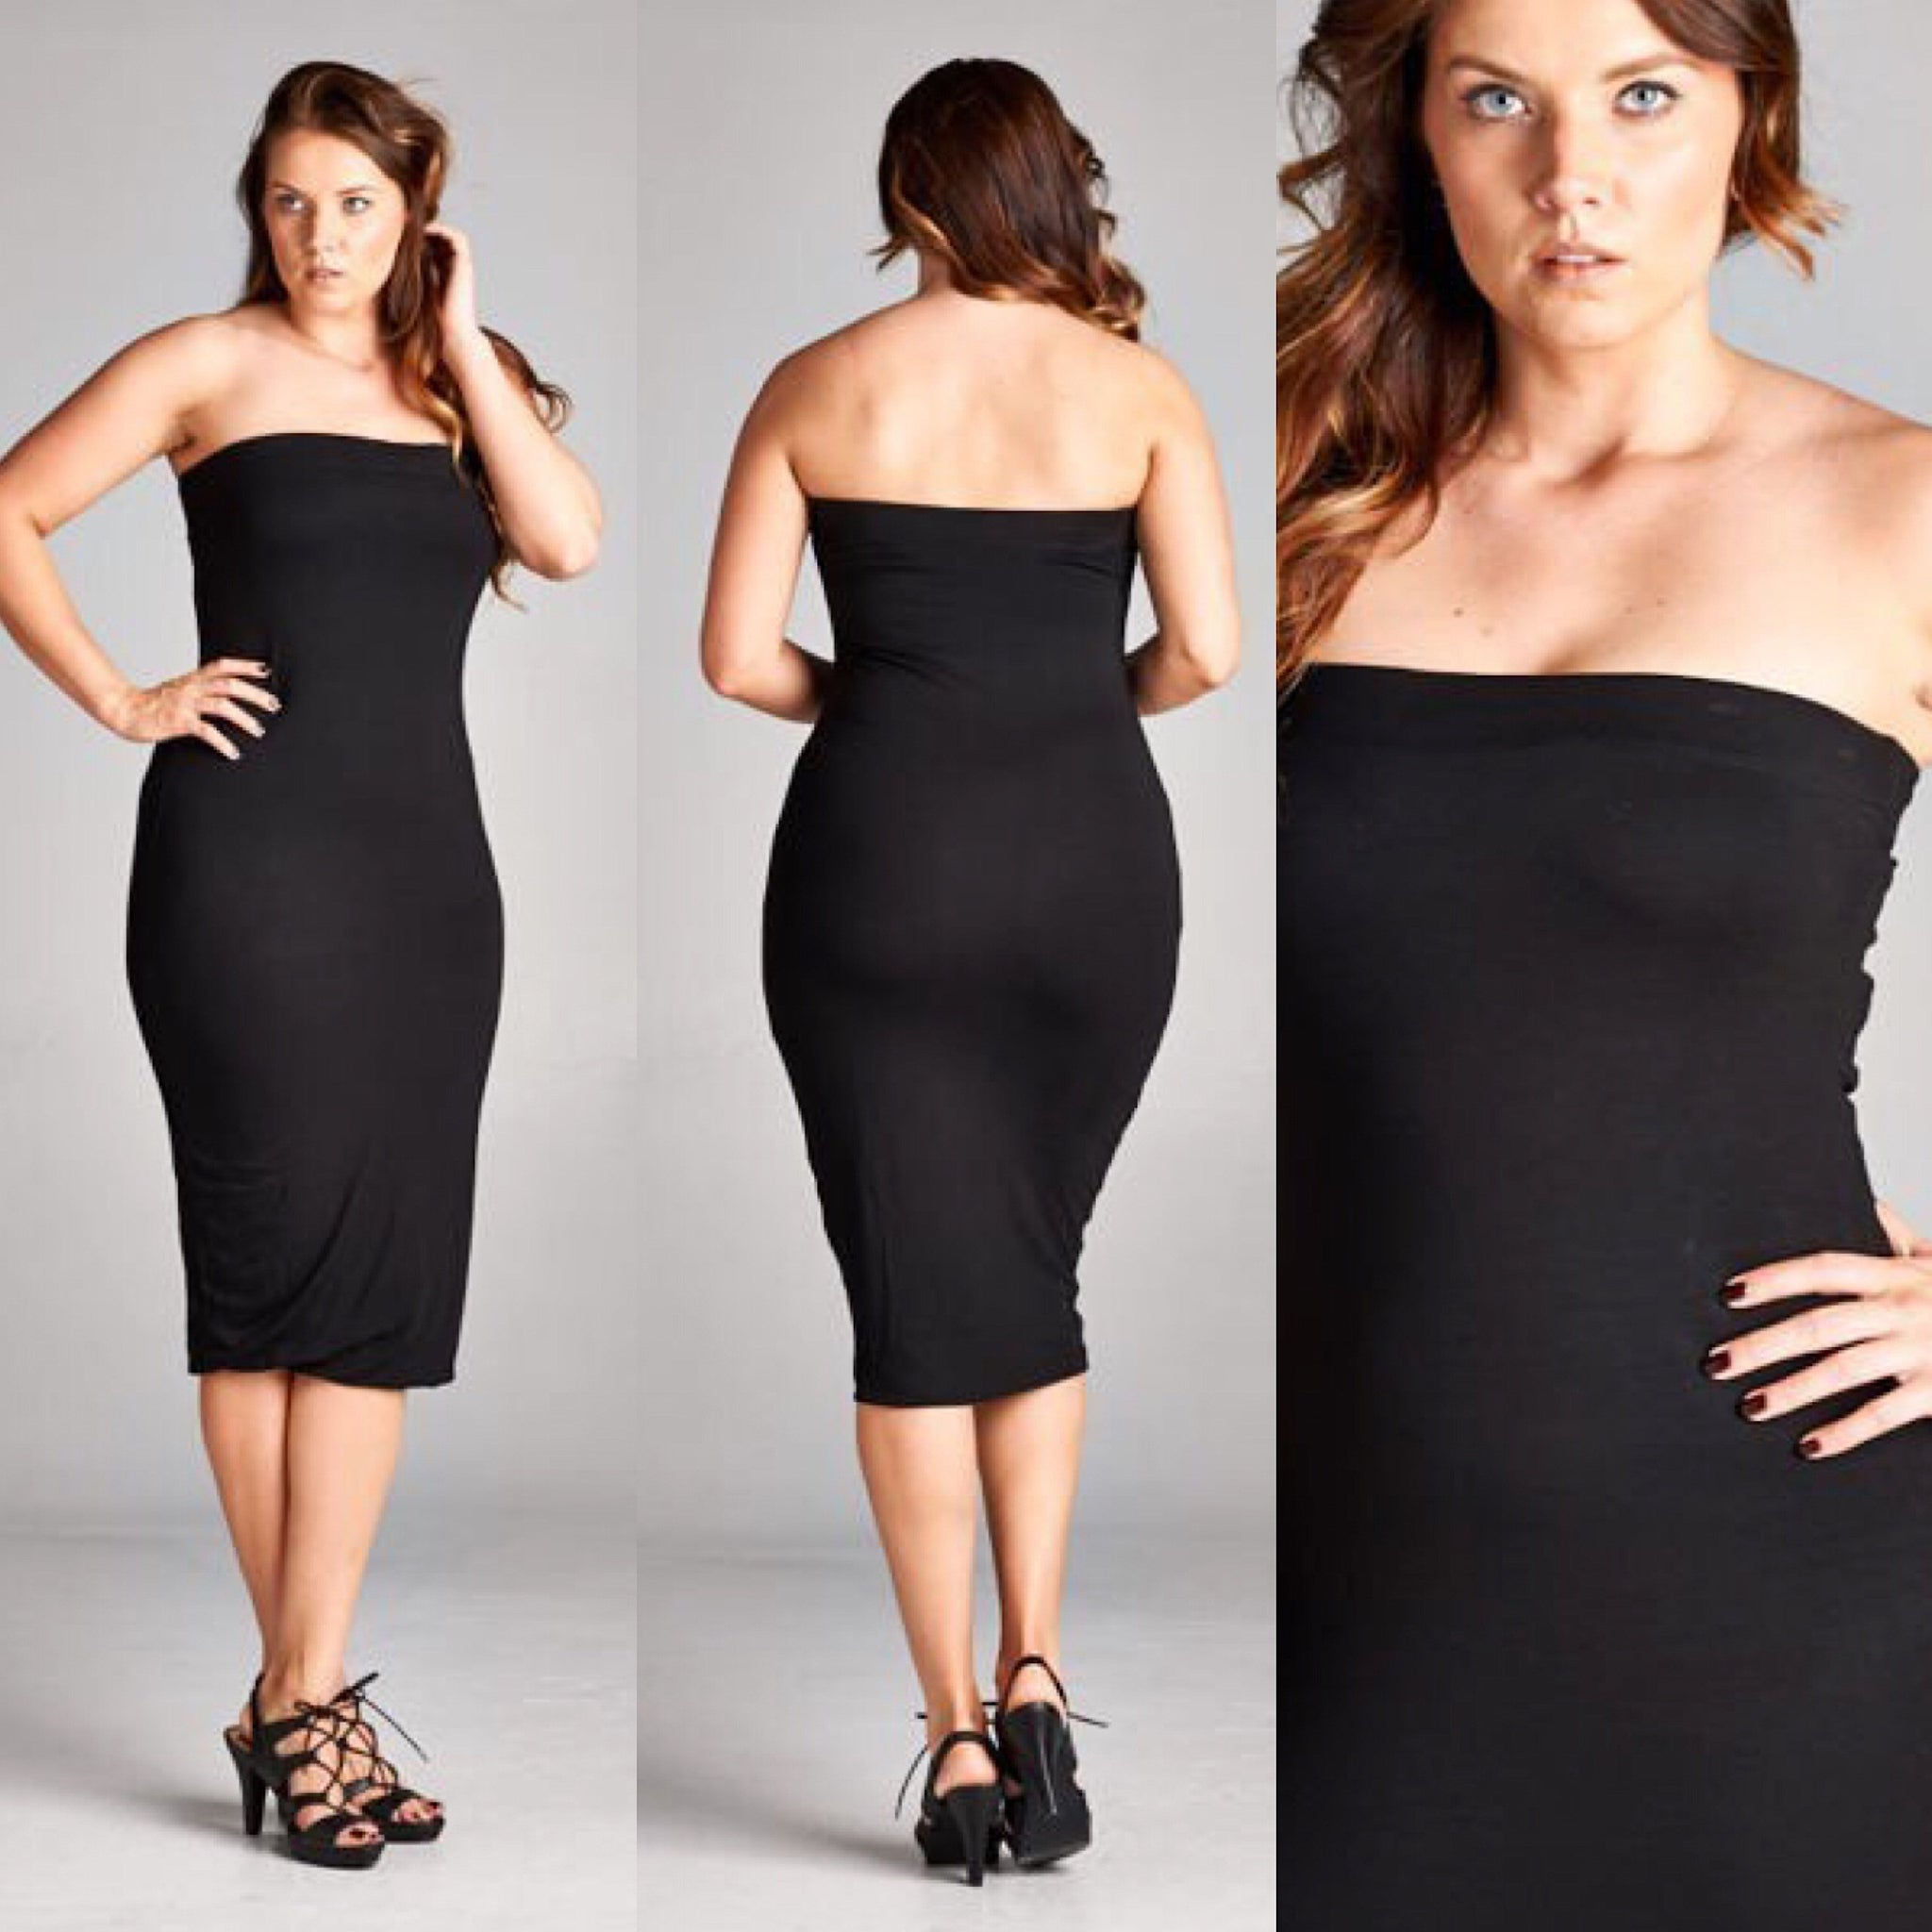 Buy Black Plus Size Strapless Tube Top Dress at Social Butterfly ...